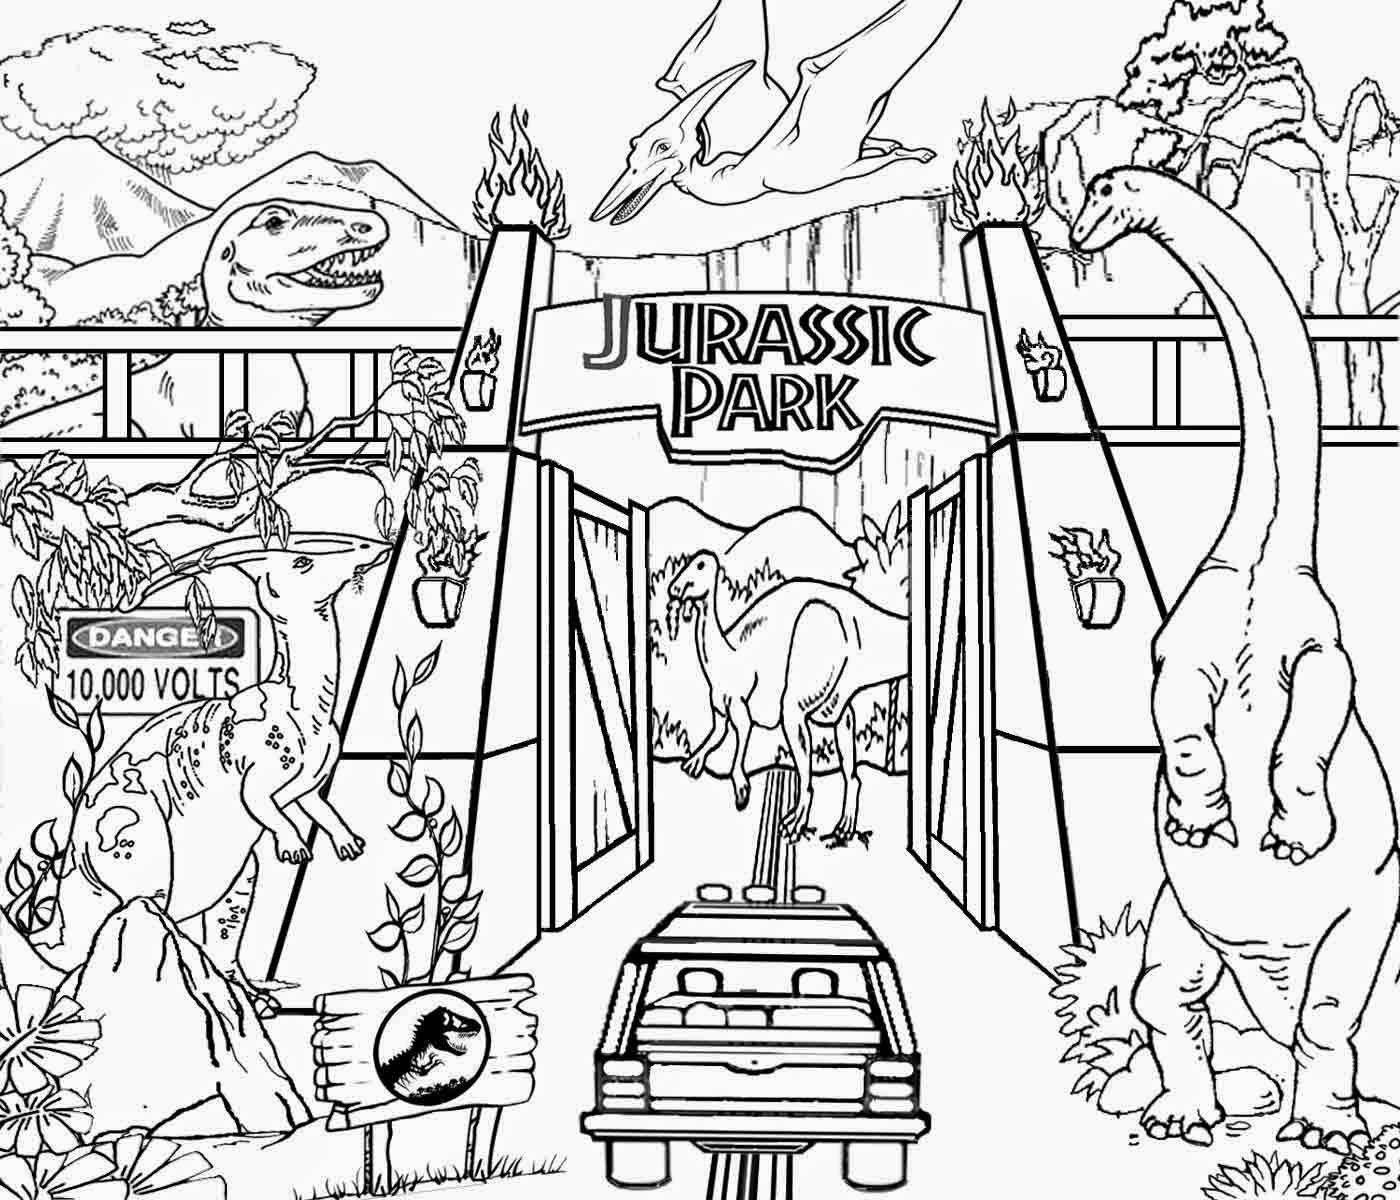 1400x1200 Rcgyexai On Jurassic Park Coloring Pages On With Hd Resolution